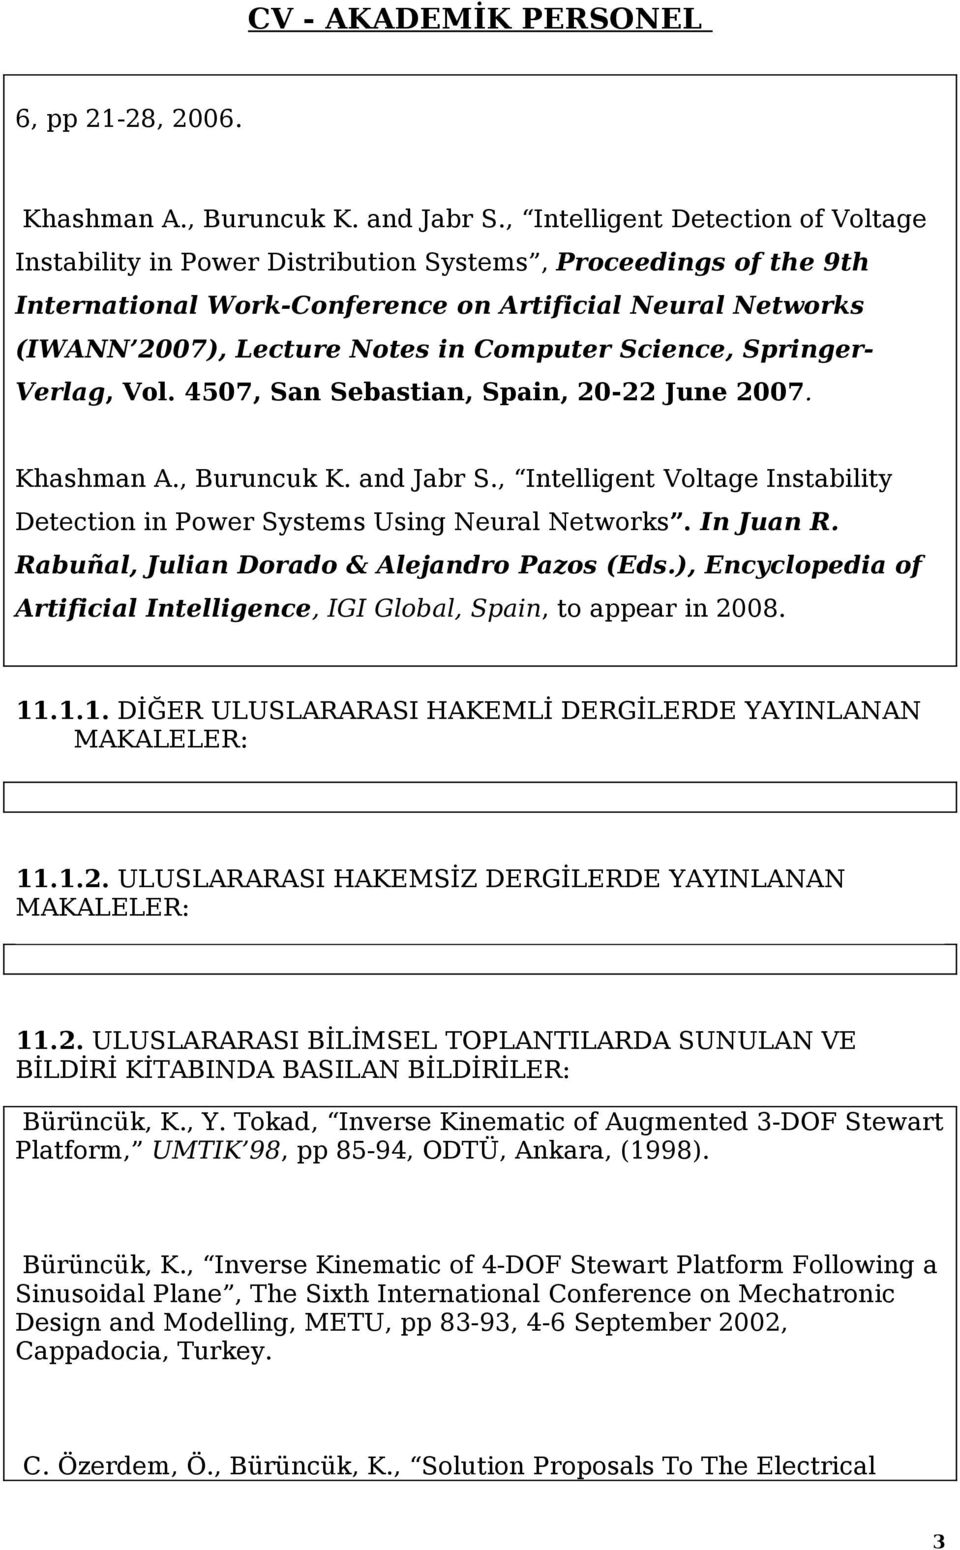 Computer Science, Springer- Verlag, Vol. 4507, San Sebastian, Spain, 20-22 June 2007. Khashman A., Buruncuk K. and Jabr S.